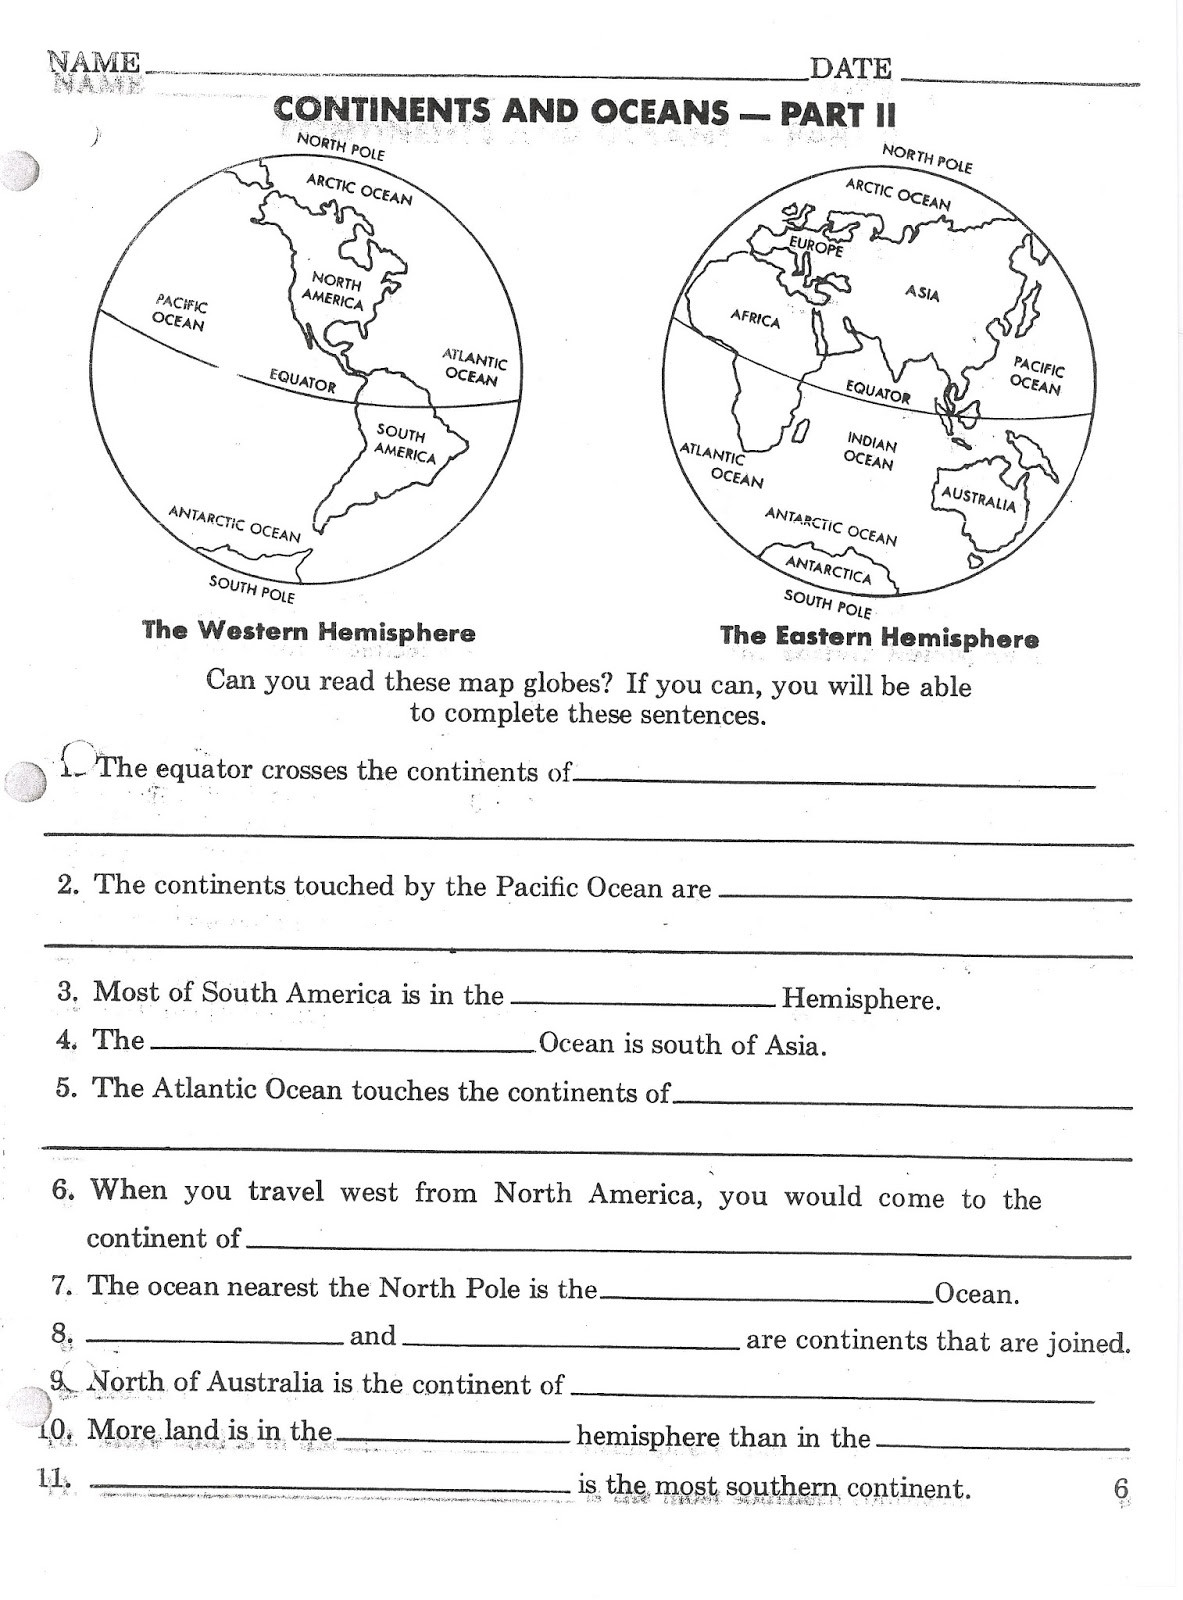 Continents and Oceans Printable Worksheets Super Teacher Worksheets Continents